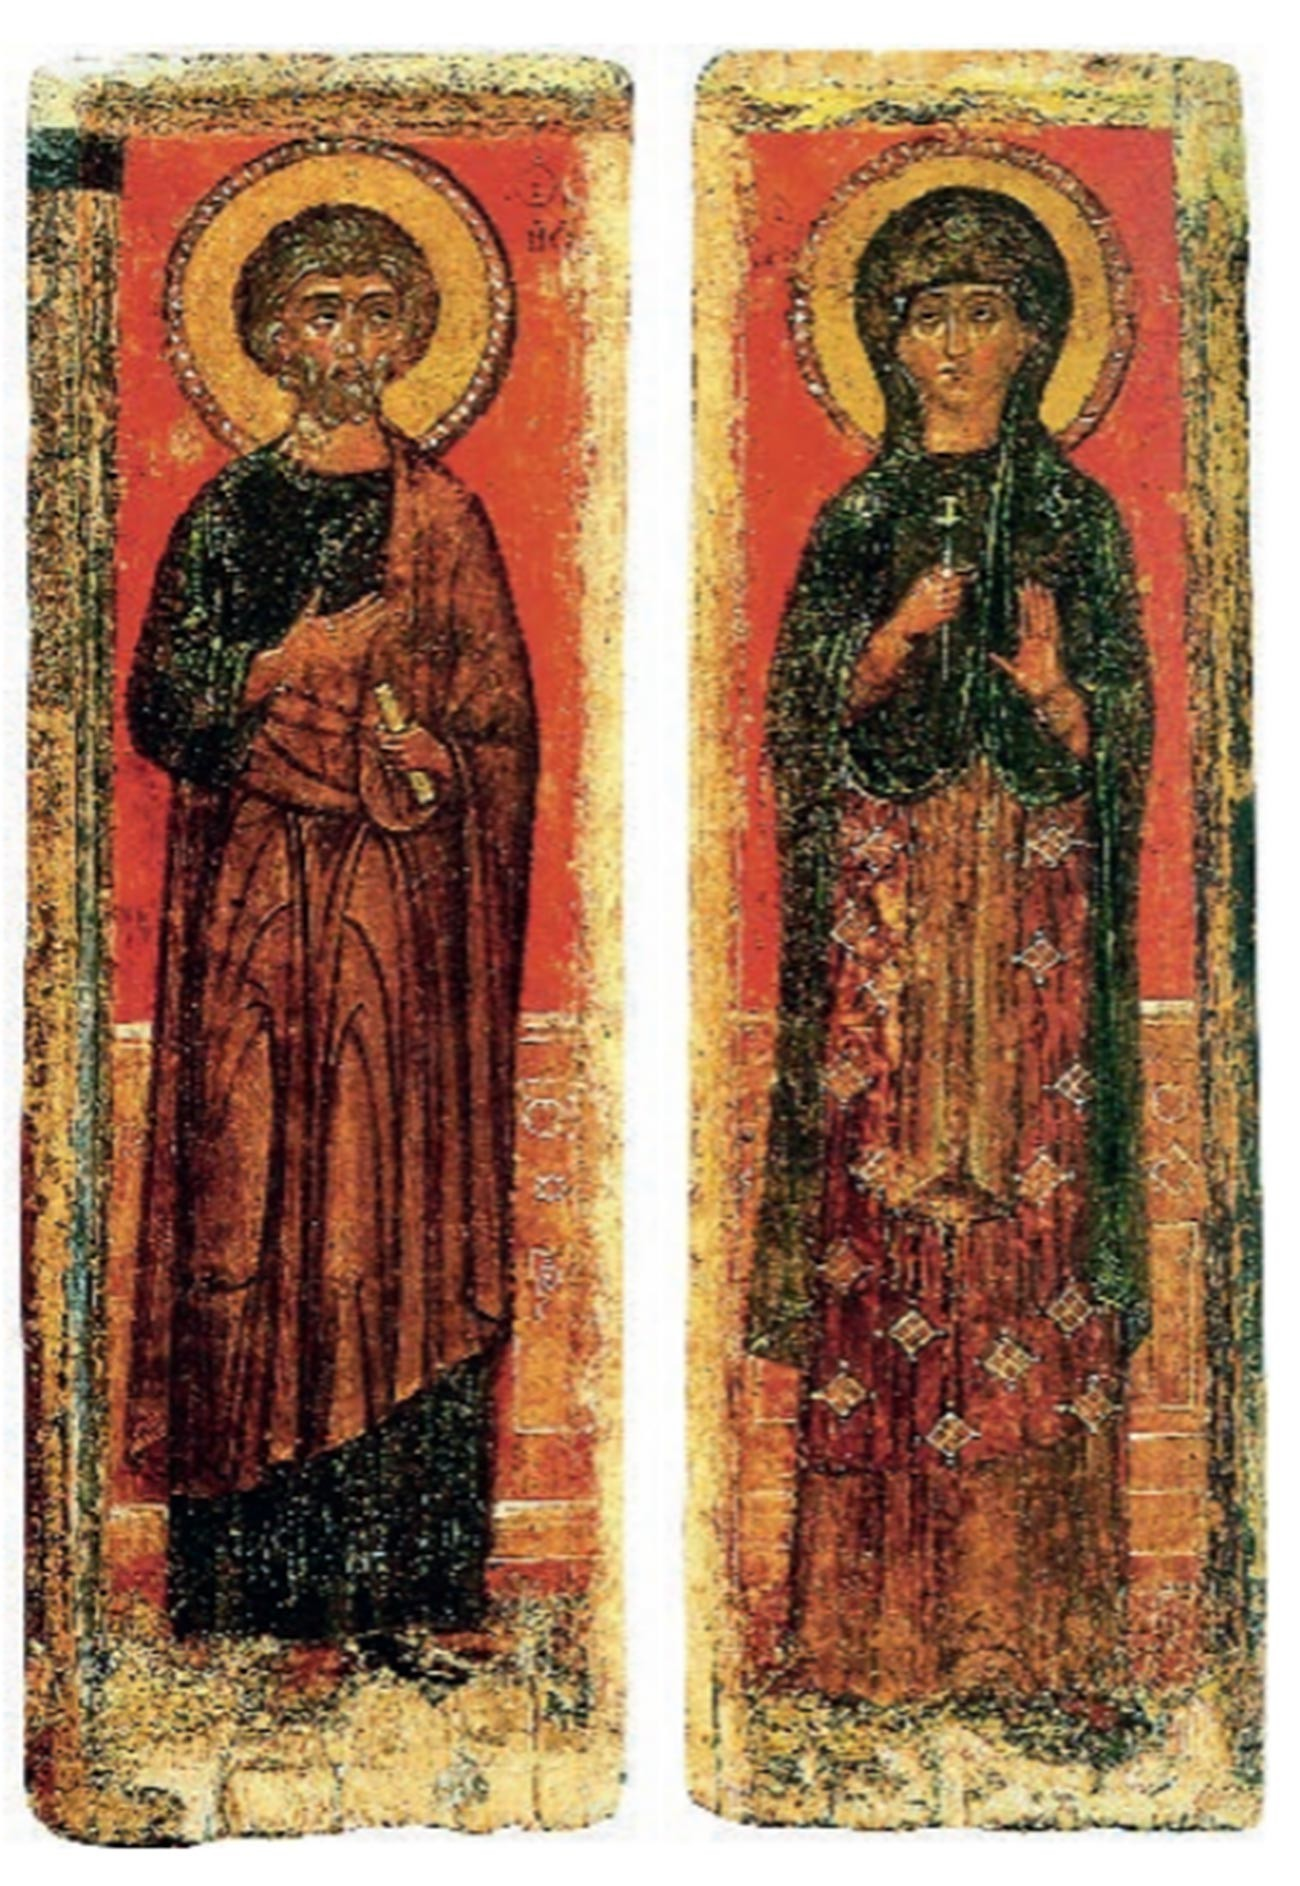 Icon of the Apostle Peter and the unknown Great Martyr